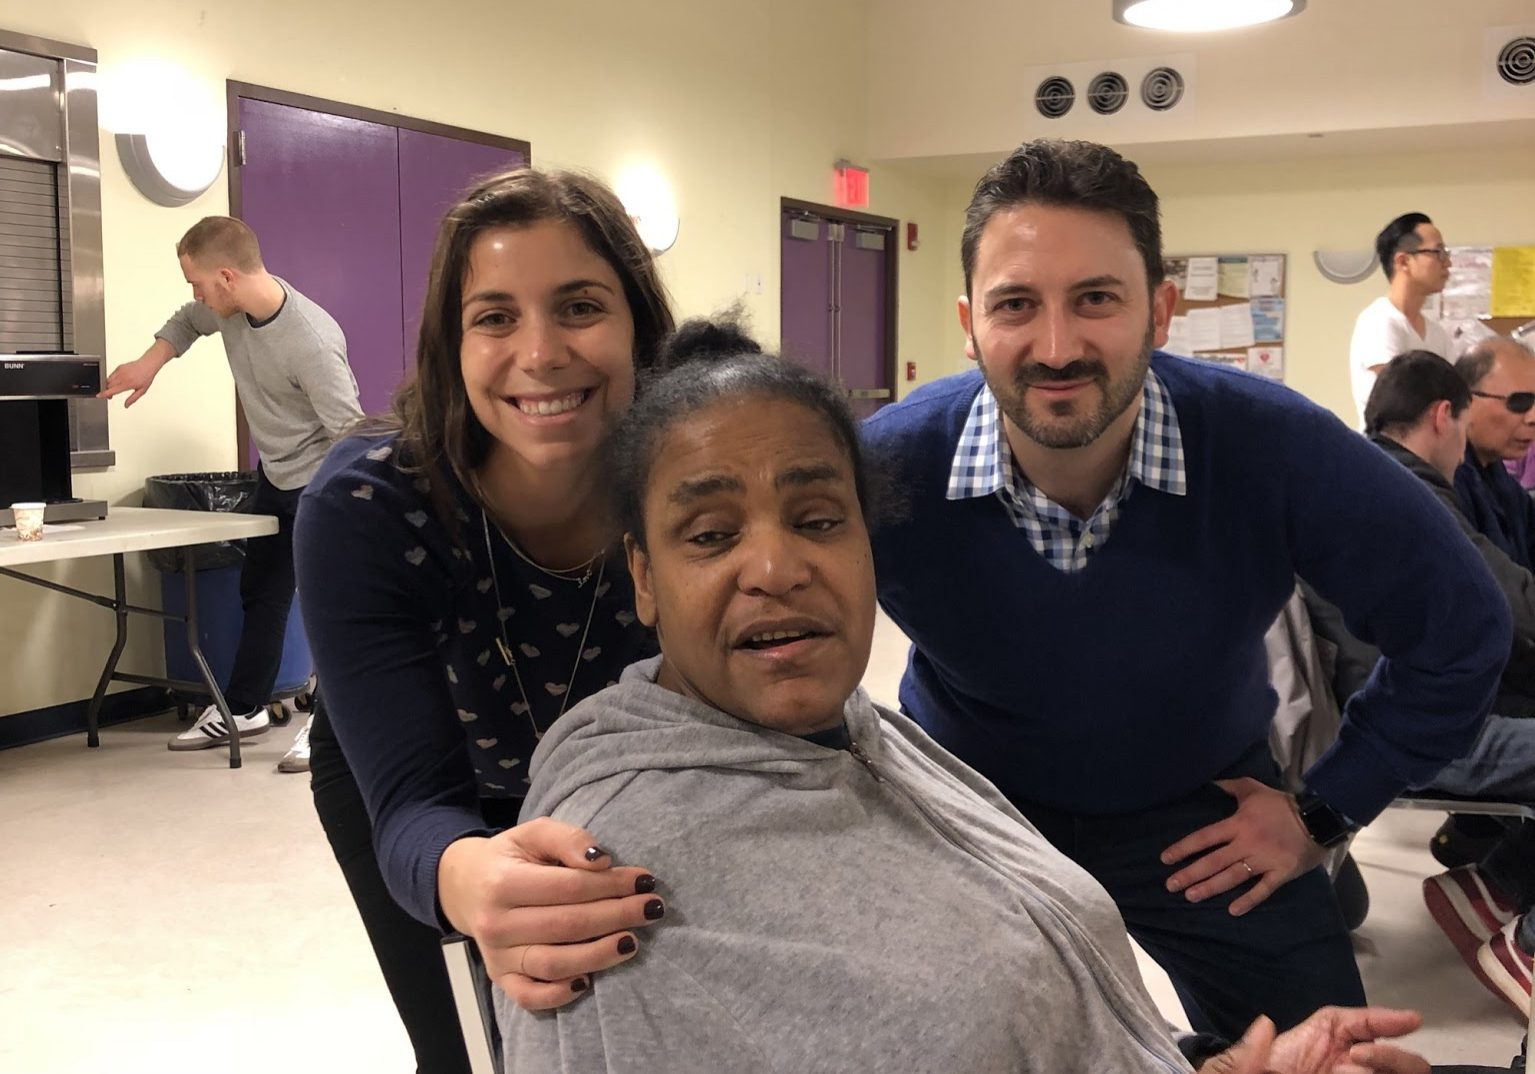 Participant Mary Conners with Volunteers from Bizzabo: three smiling faces from bingo night, while young man in background fumbles with coffee maker